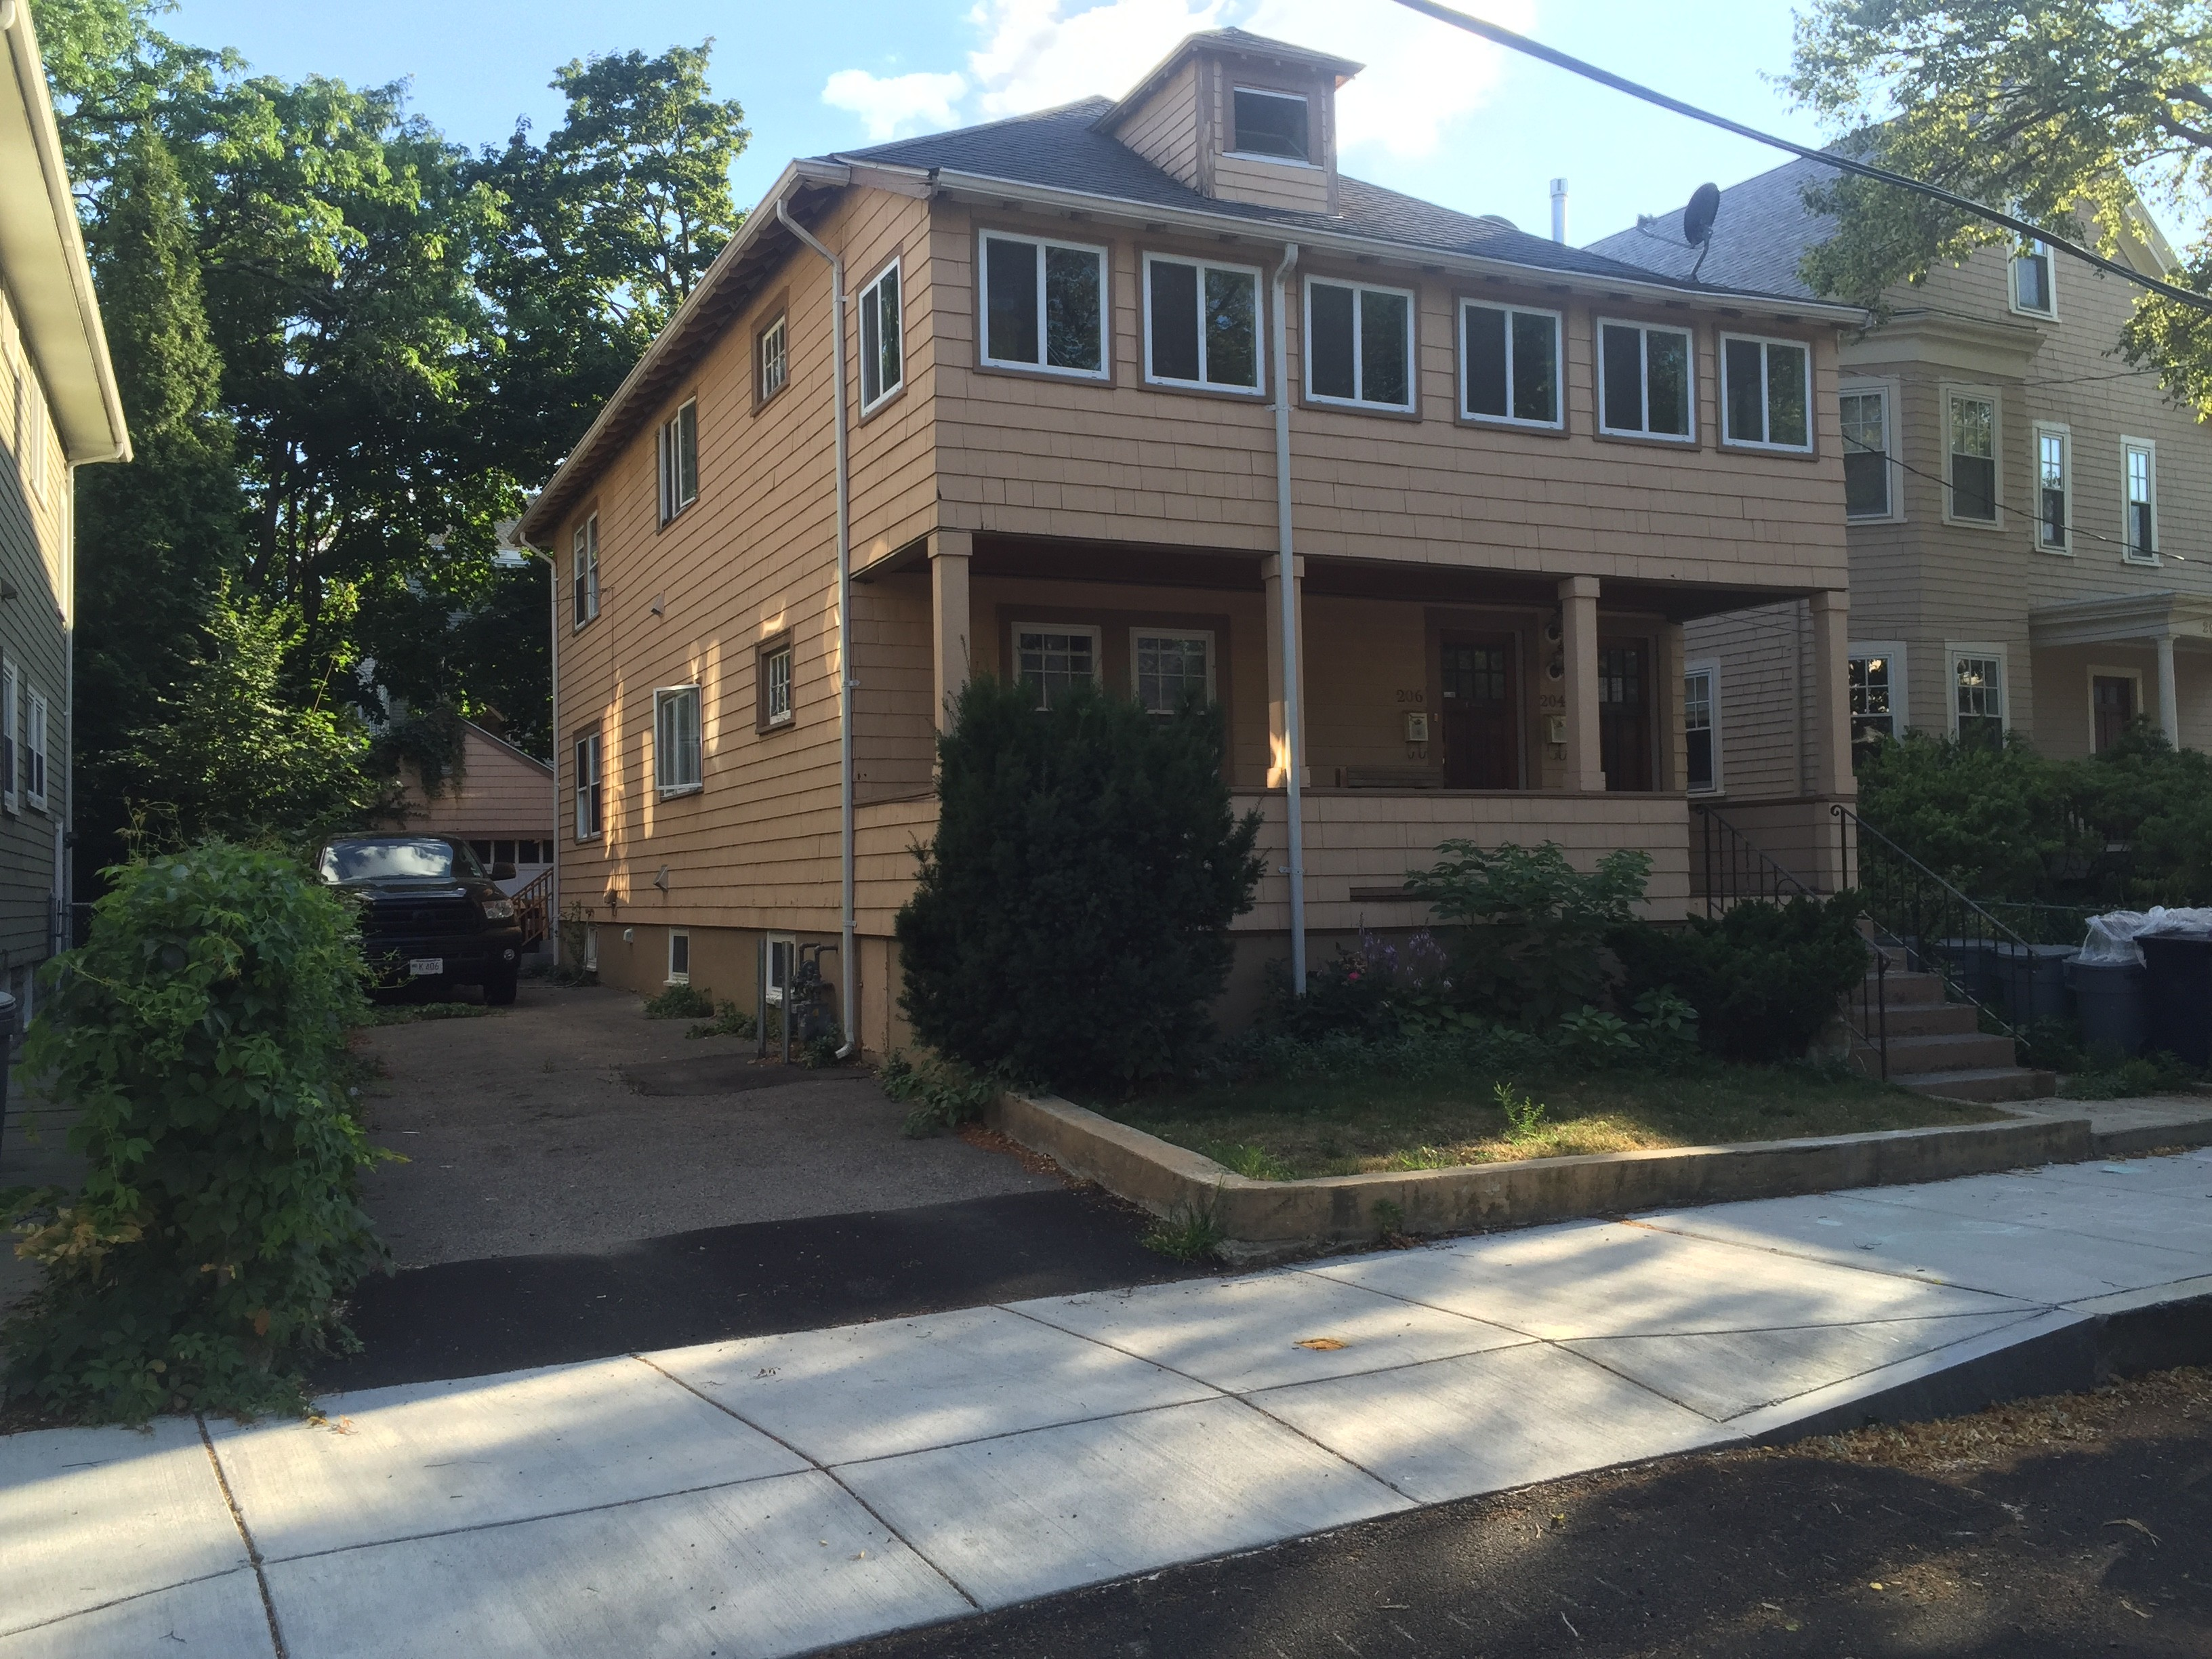 206 fayerweather street cambridge ma 02138 3 bedroom - 3 bedroom apartments in cambridge ma ...